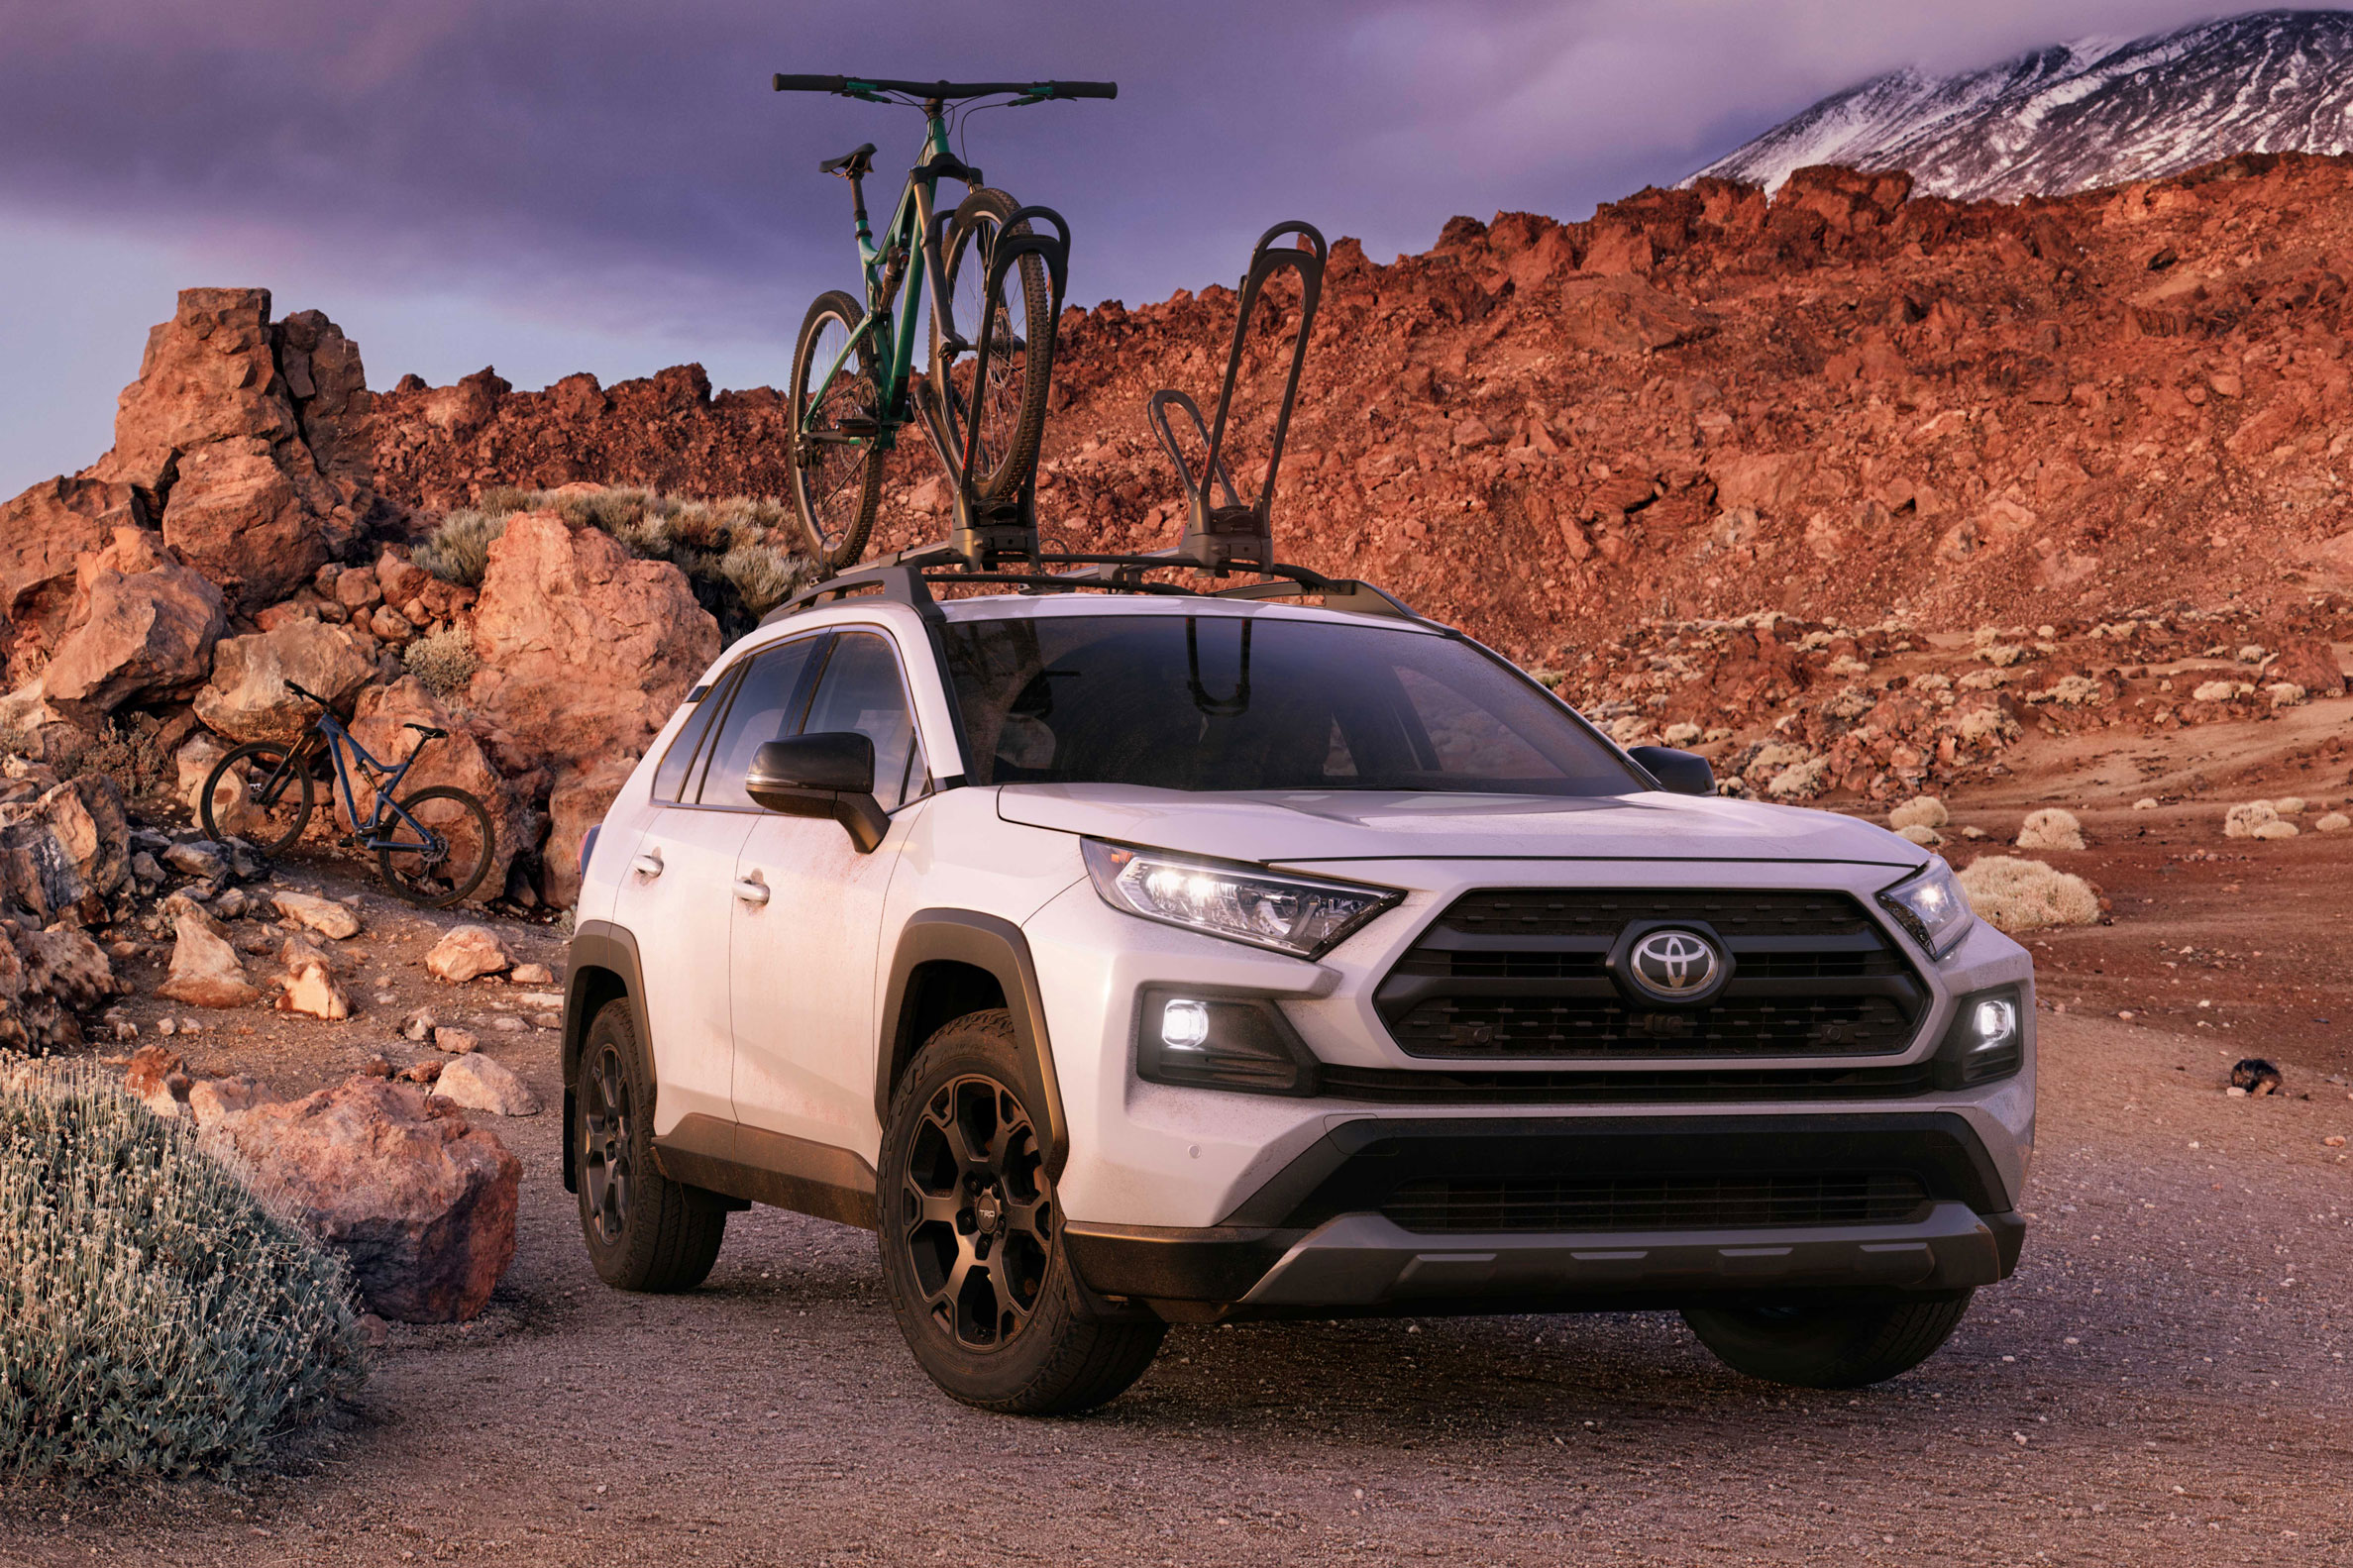 Best All Terrain Tire 2020 2020 RAV4 TRD Off Road: Toyota Slaps an Off Road Badge on Its